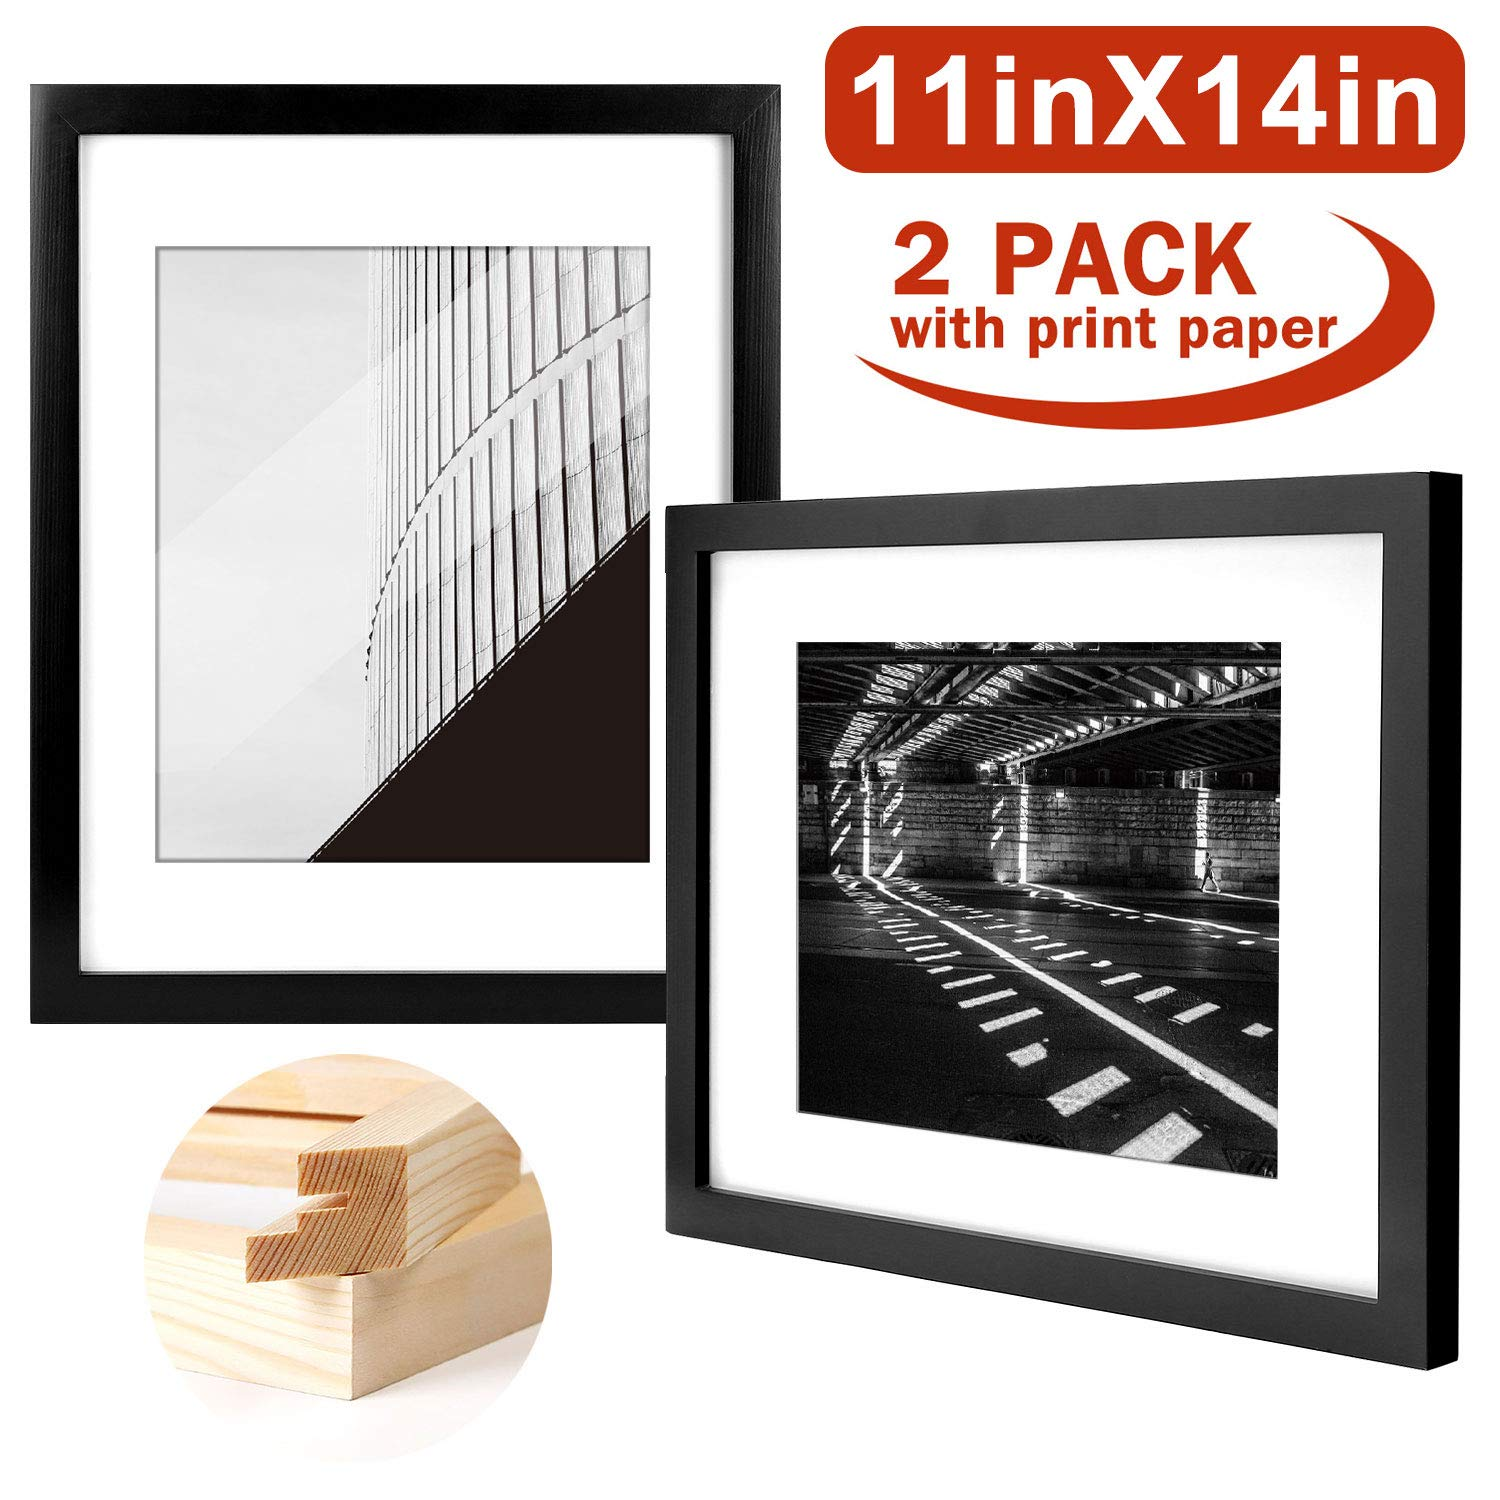 Yome 11x14 Black Picture Frames, Collage Photo Frames Set Made of Solid Wood and Plexiglass for Wall Display Pictures 8x10 with Mat, Mounting Hardware Included, 2 pack by Yome